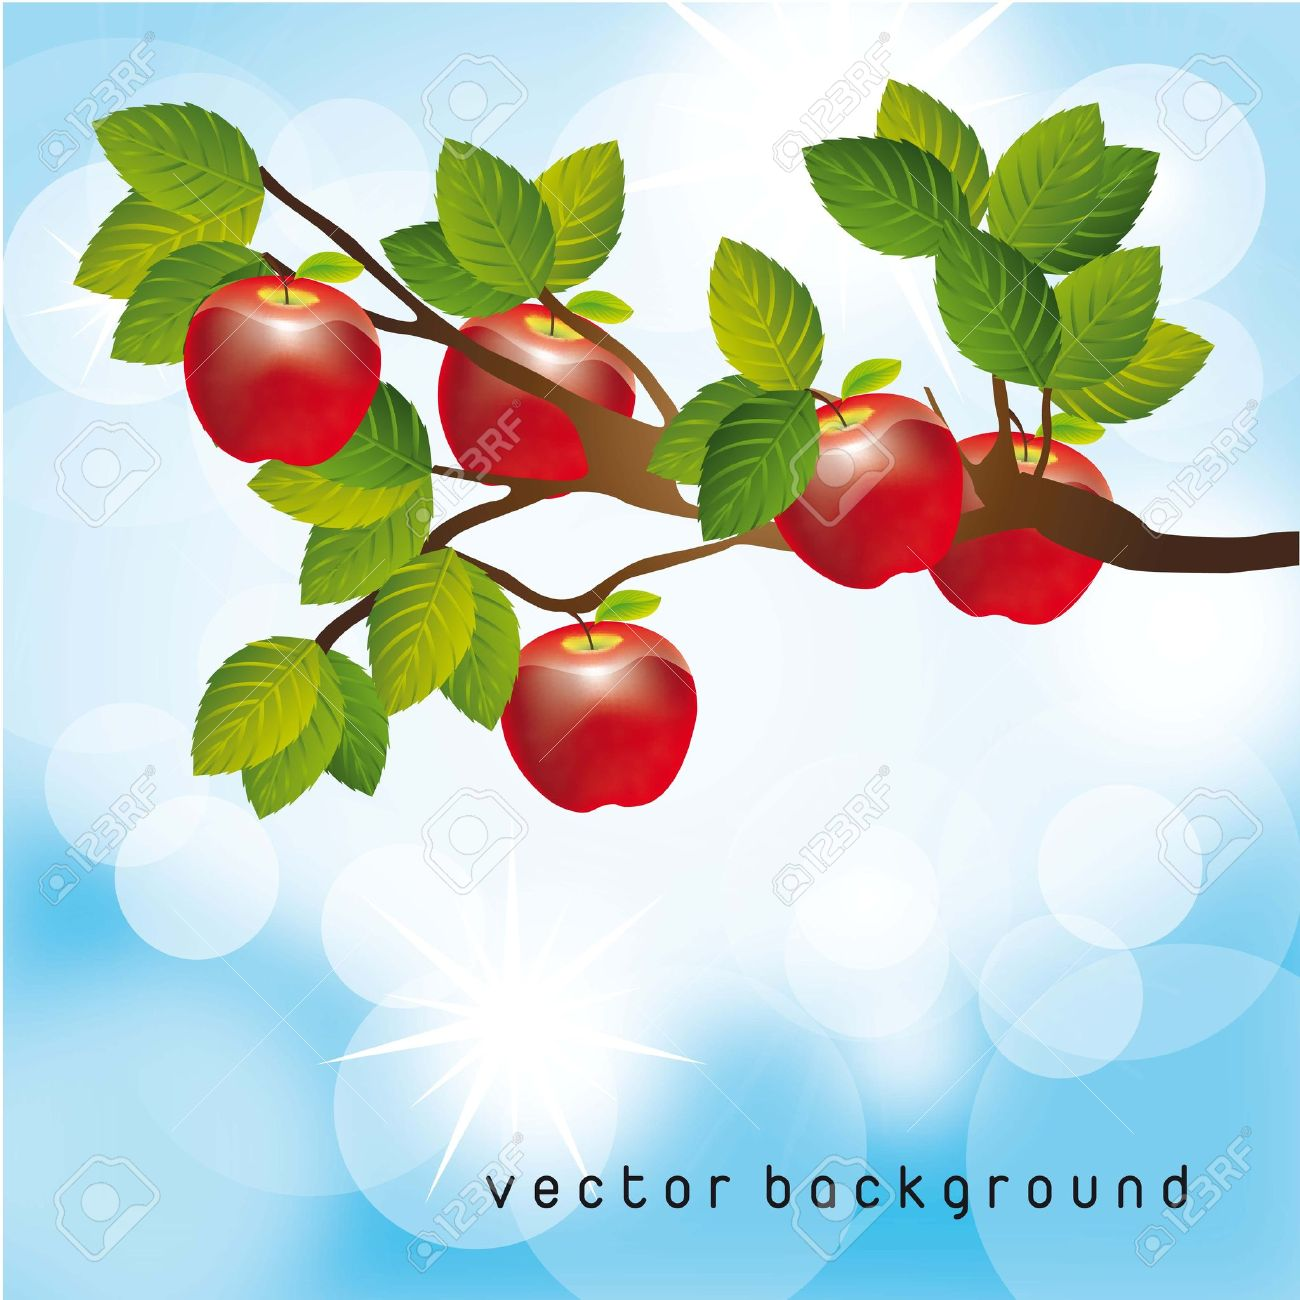 Clipart apple tree with sky.